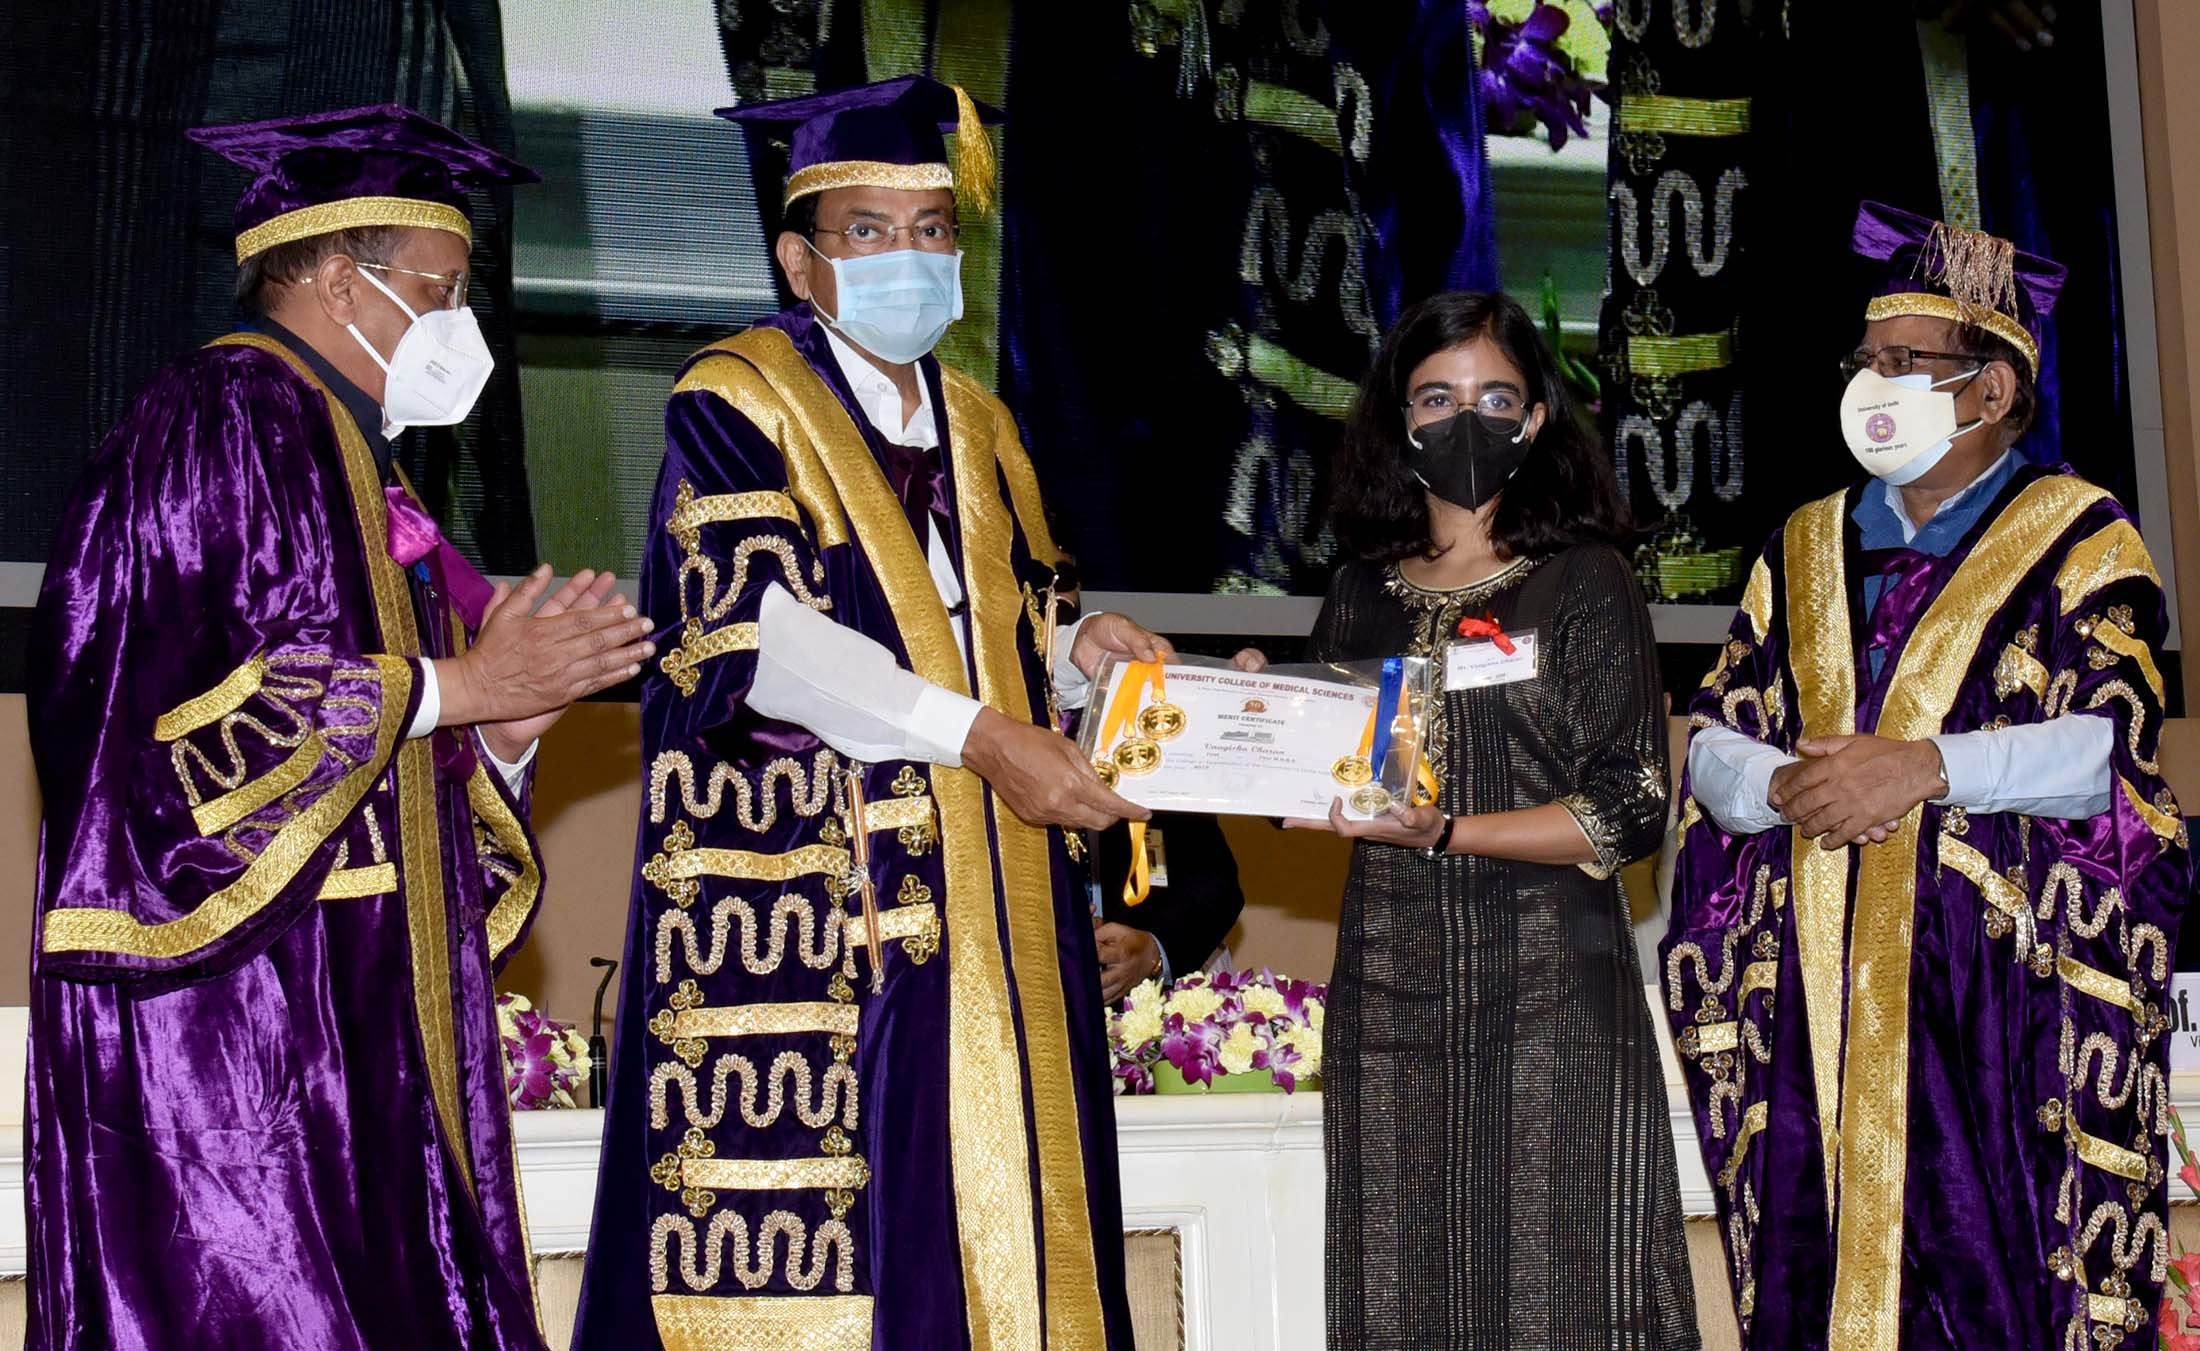 The Vice President, Shri M. Venkaiah Naidu presenting awards to students during the convocation ceremony of the University College of Medical Sciences (UCMS) at Vigyan Bhawan in New Delhi on September 25, 2021.